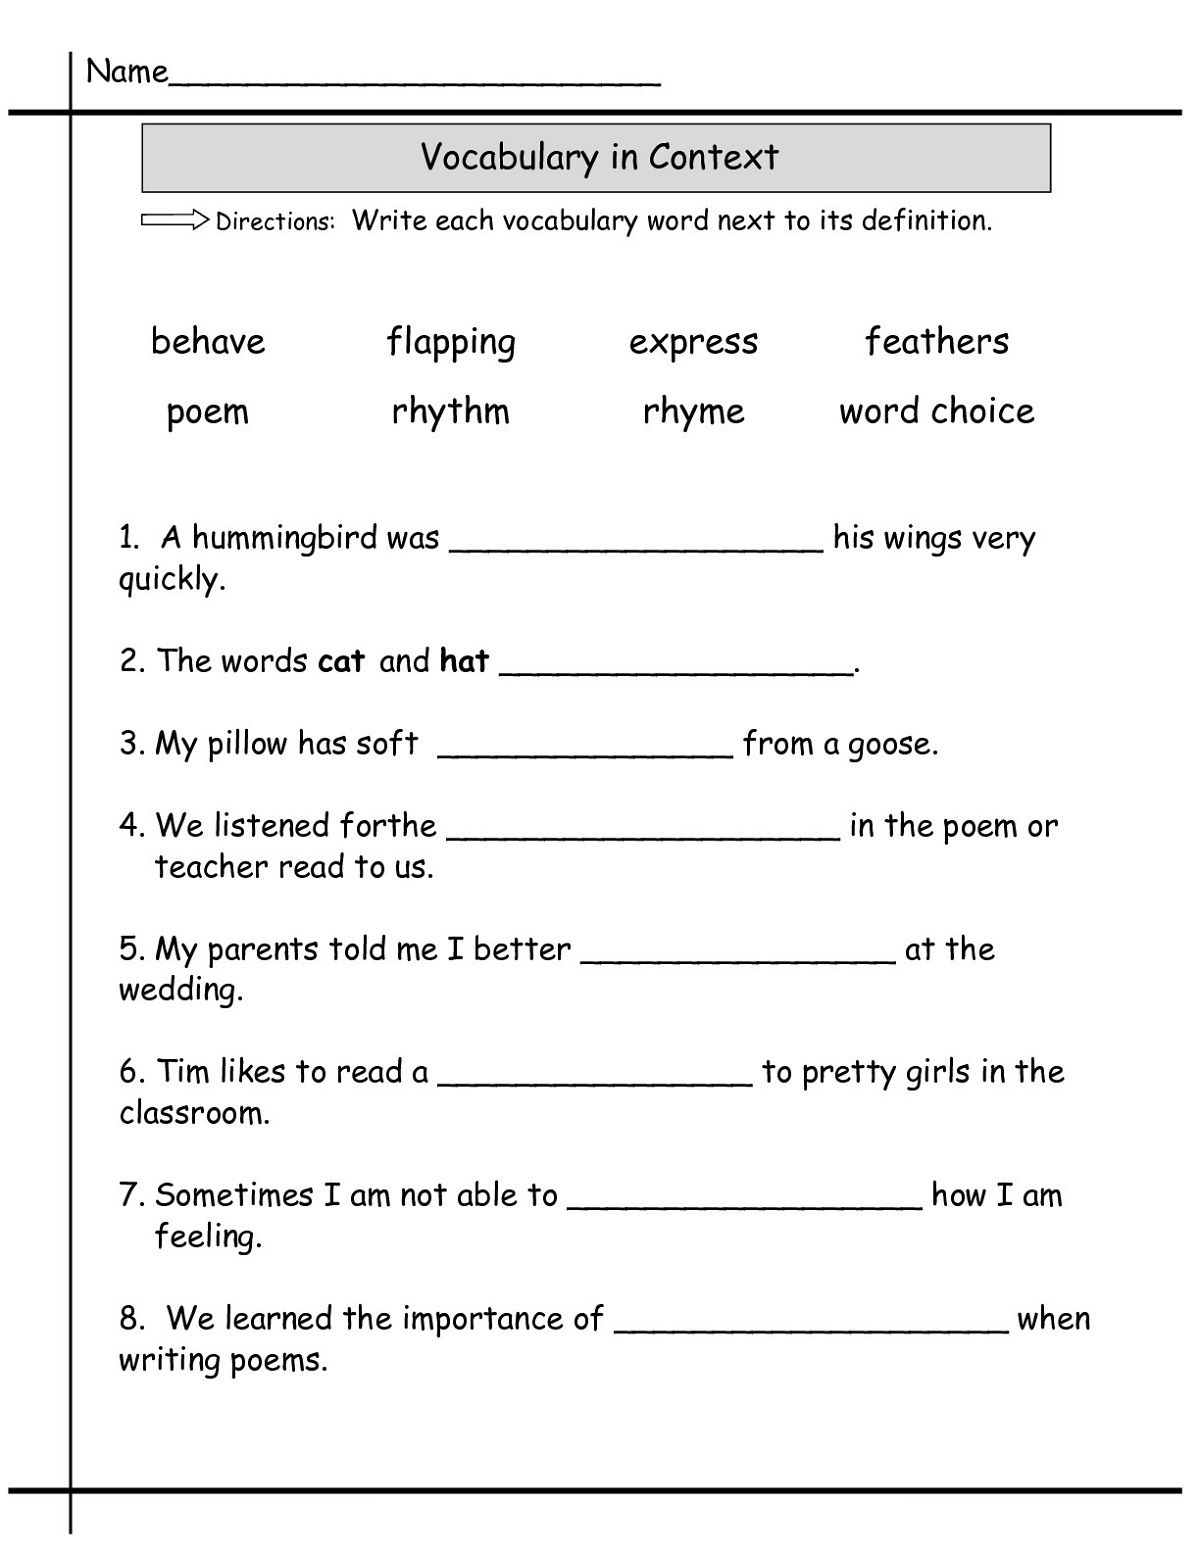 https://dubaikhalifas.com/printable-free-grammar-worksheets-second-grade-2-punctuation-negative-contractions-english/ [ 91 x 1552 Pixel ]